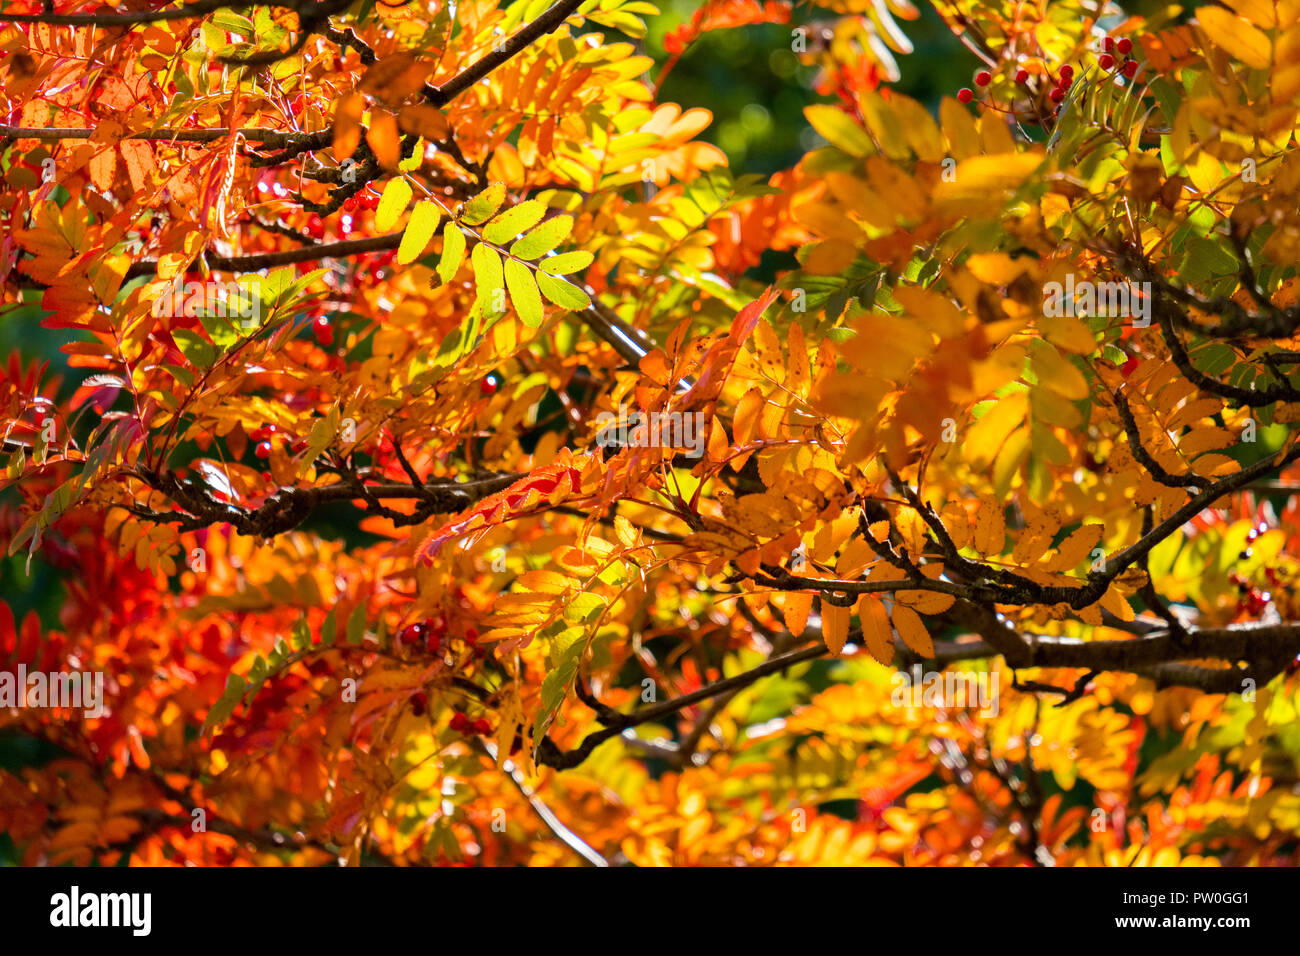 Feuilles d'or et rouge sur l'arbre en automne, Edale , Parc national de Peak District Photo Stock